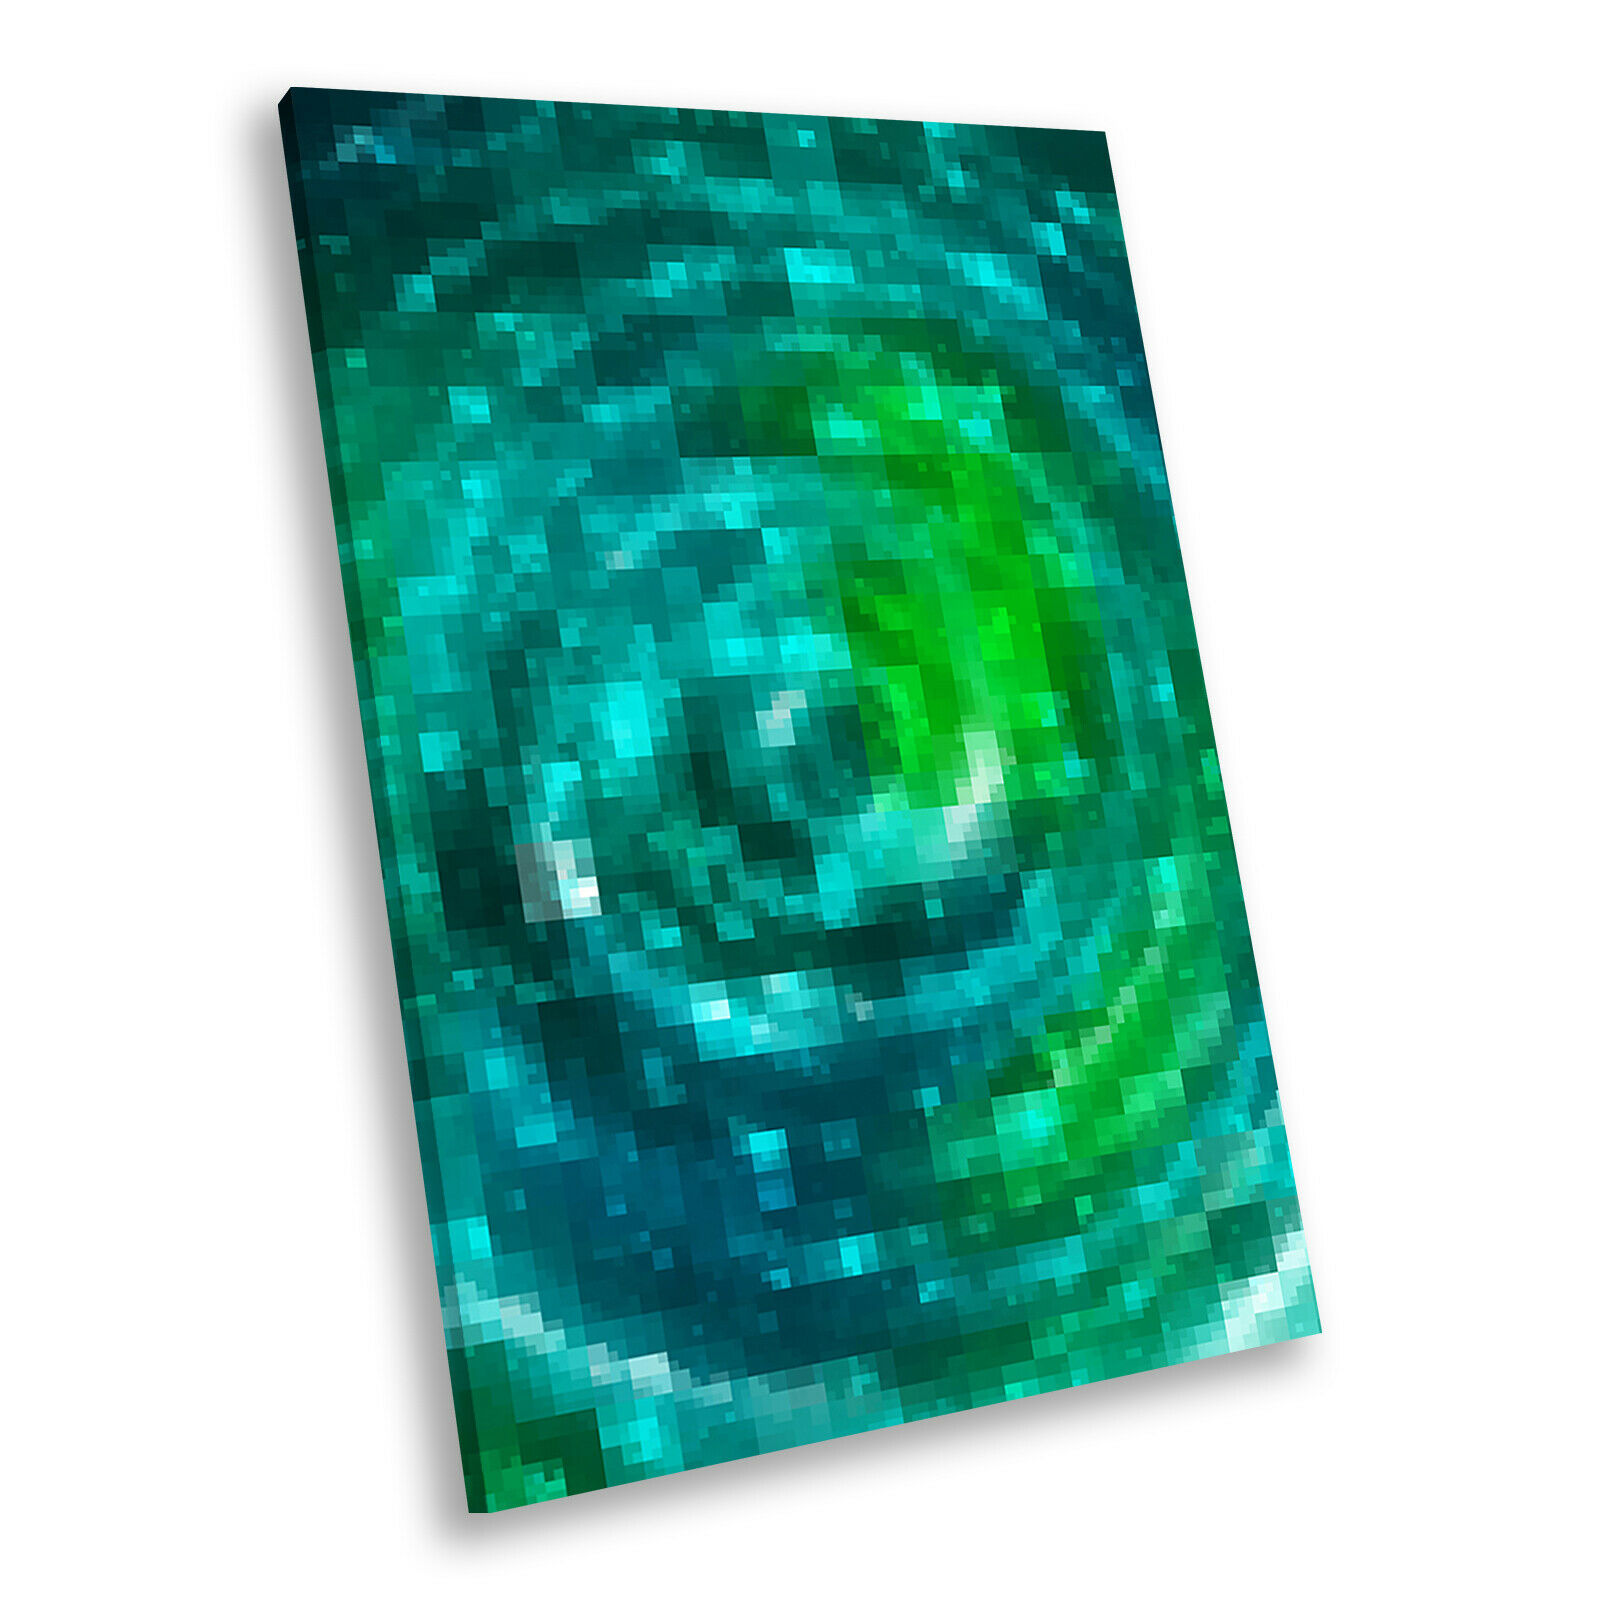 Grün Blau Teal Cool Portrait Abstract Canvas Framed Art Large Picture